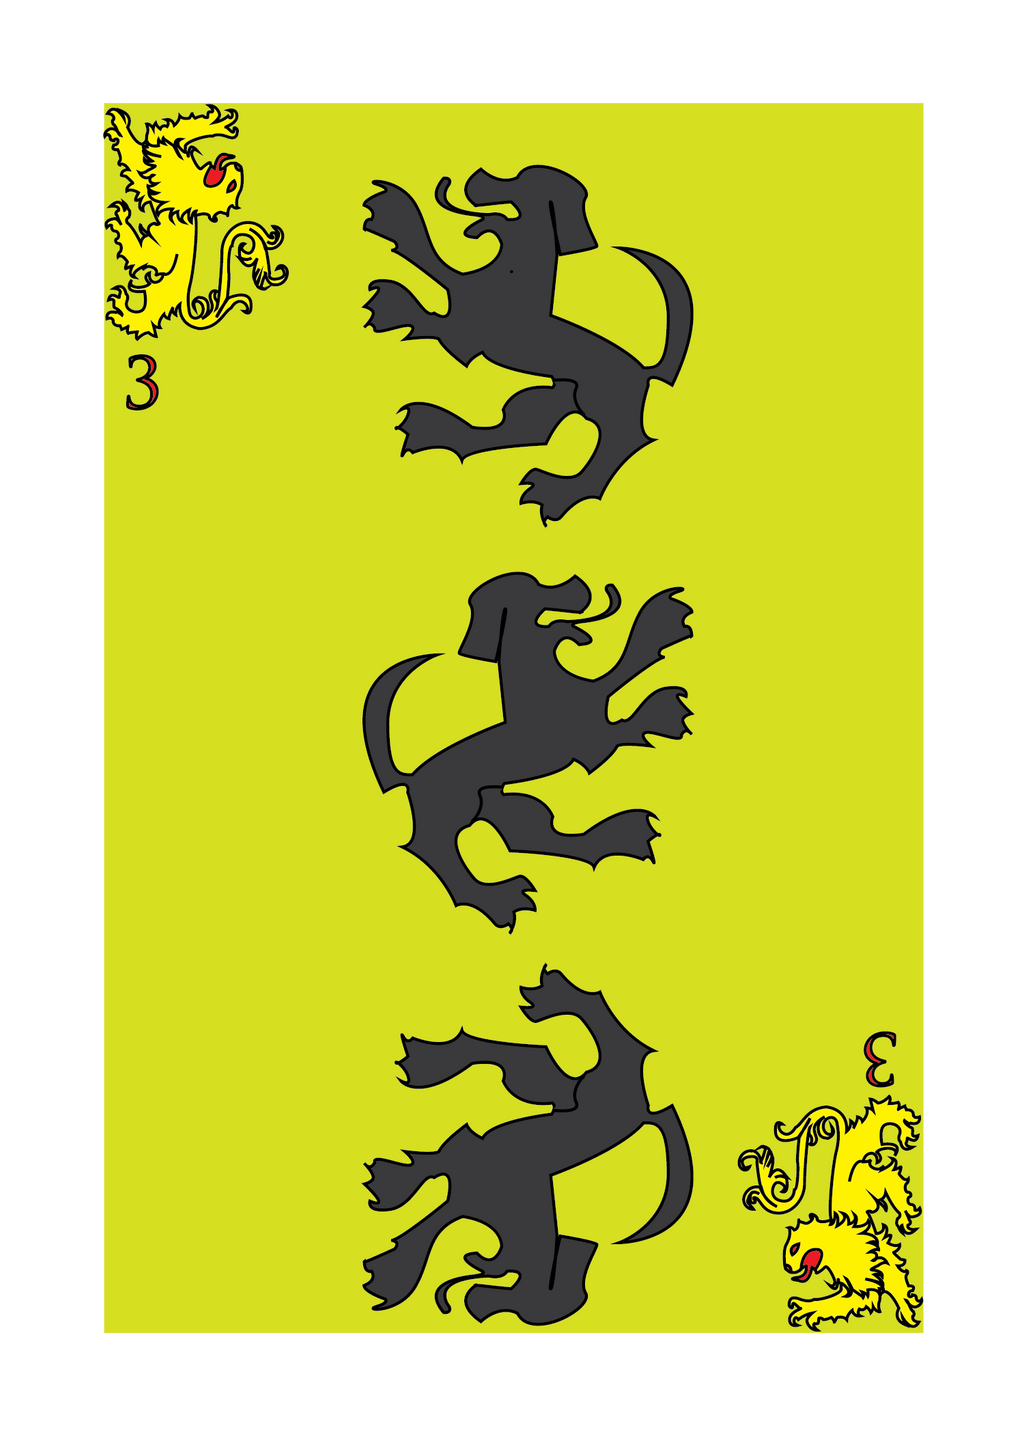 House Clegane by Dangercats77 on DeviantArt